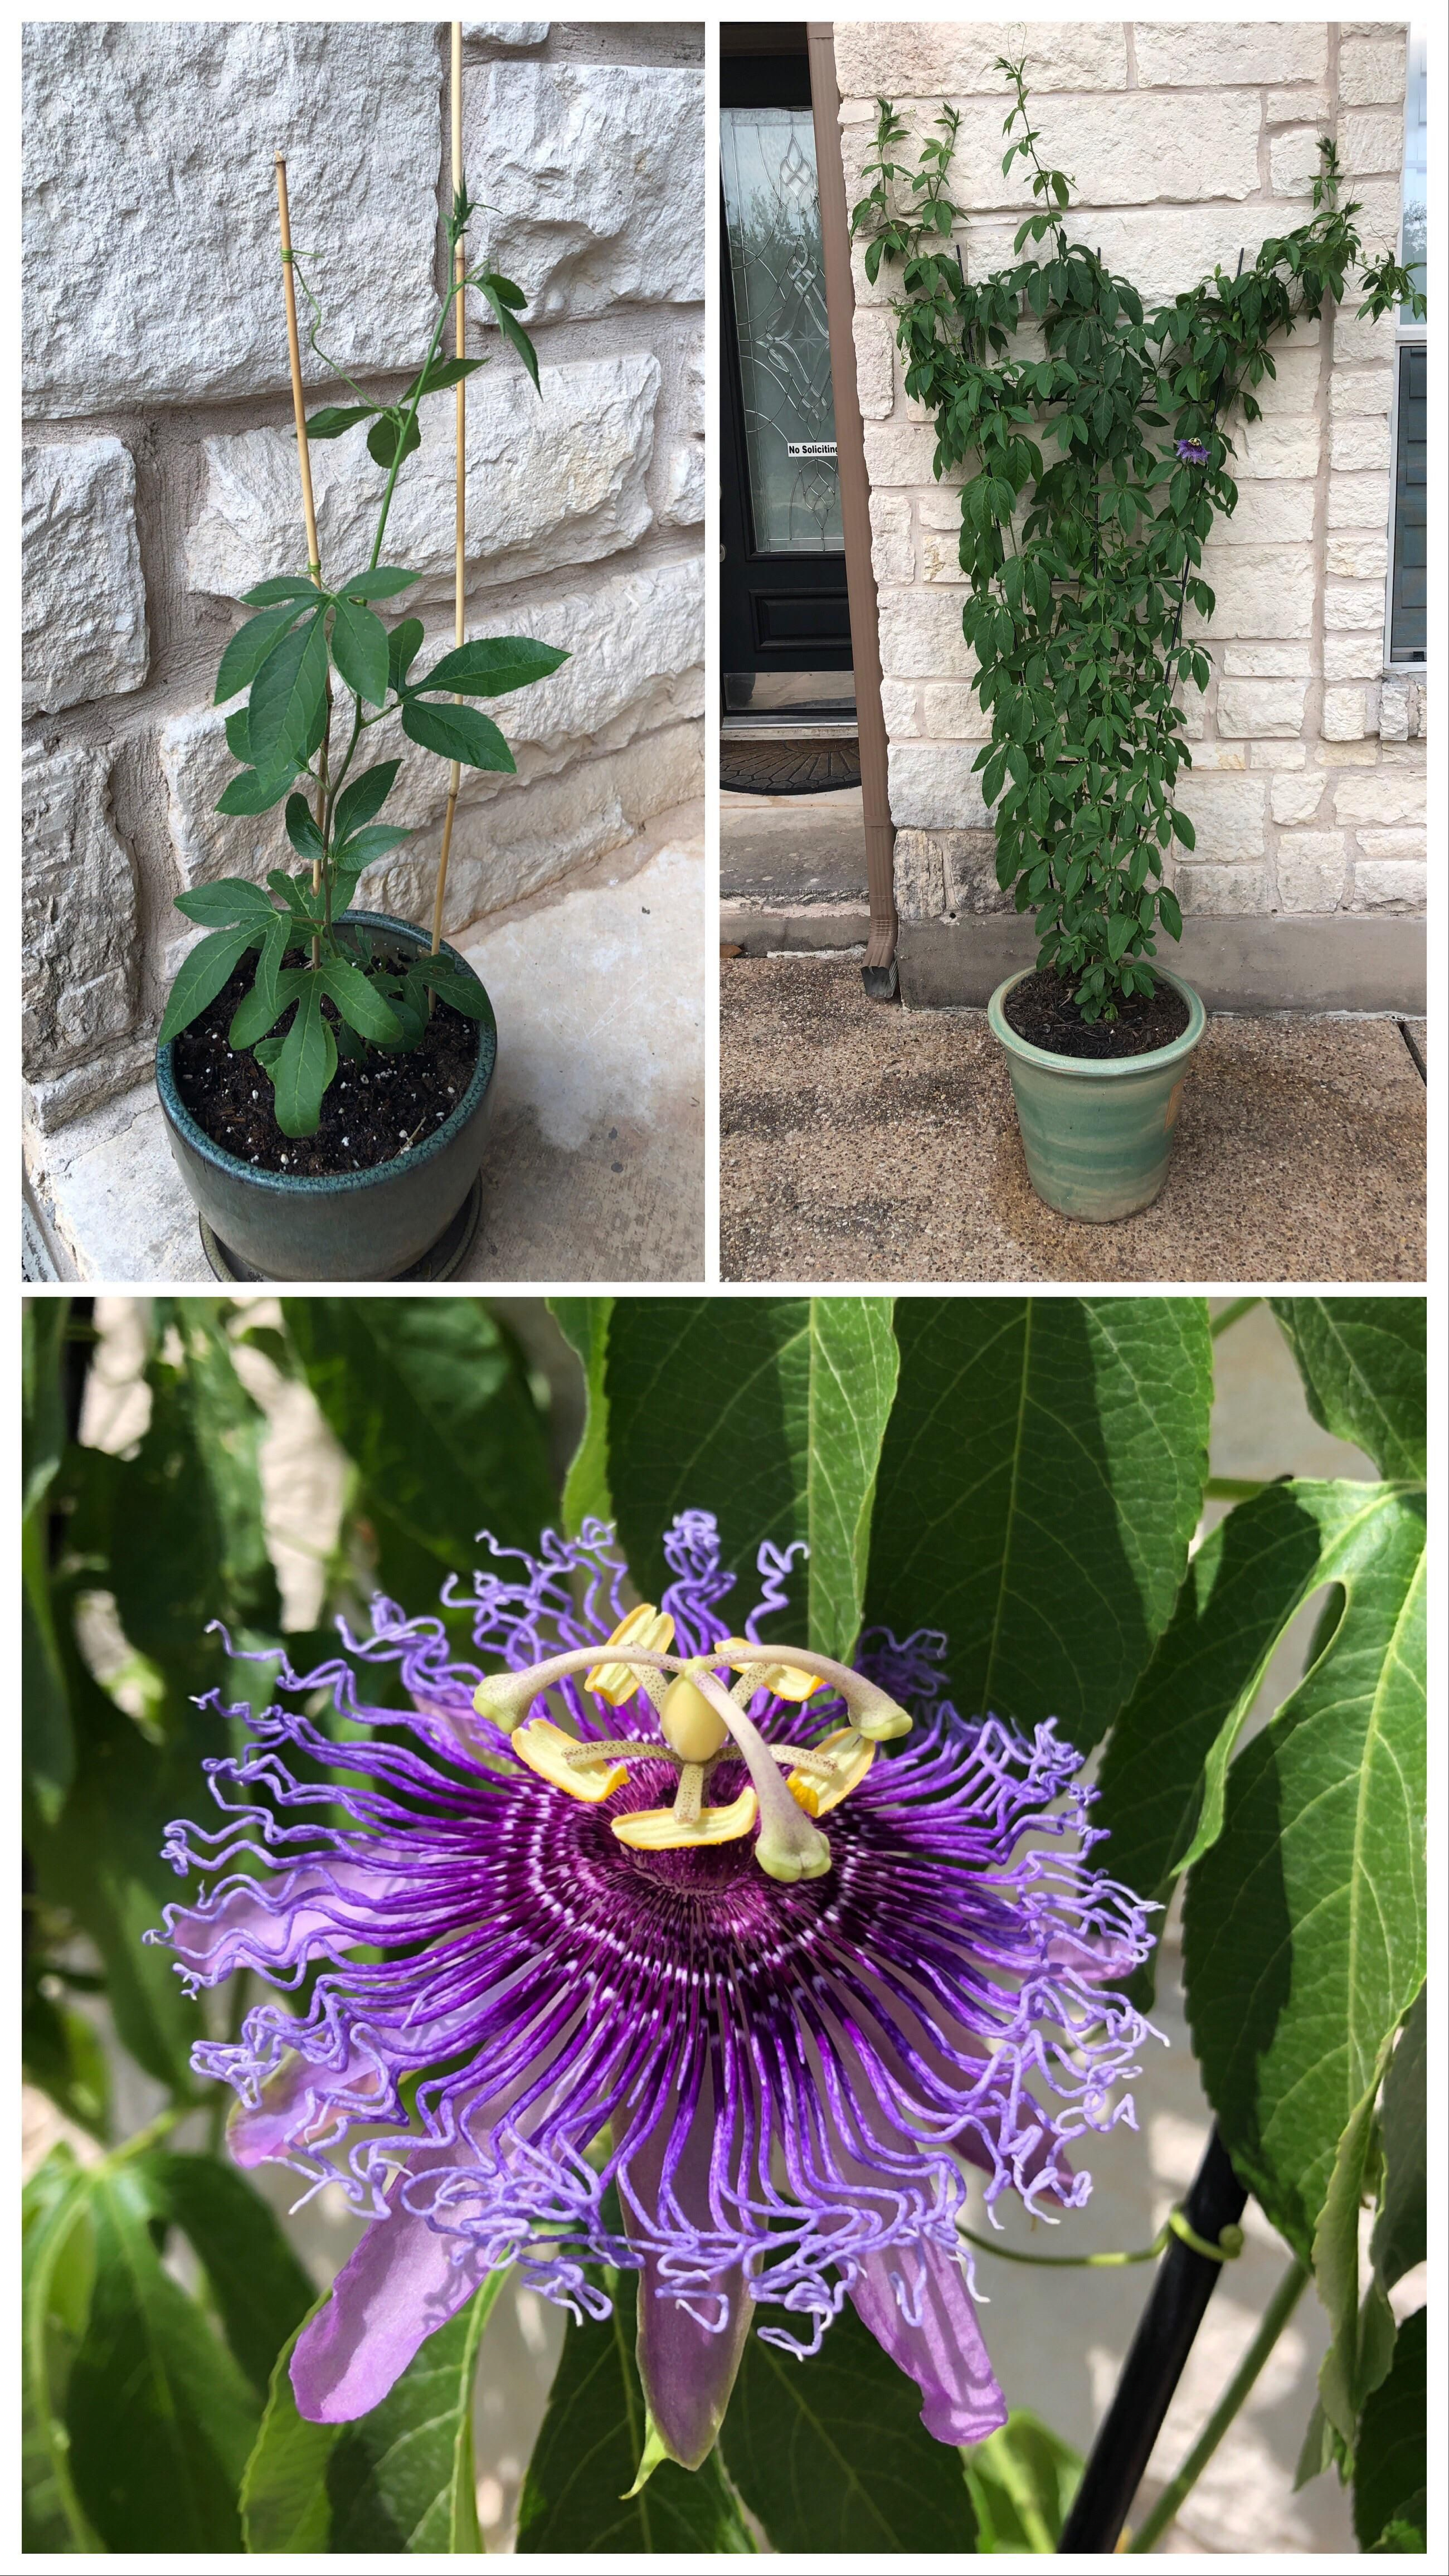 The Passiflora Vine Has Grown A Lot In The Last 49 Days And Today Bloomed Its First Flower Each Flower Only Lasts For One Day Before Passiflora Bloom Flowers